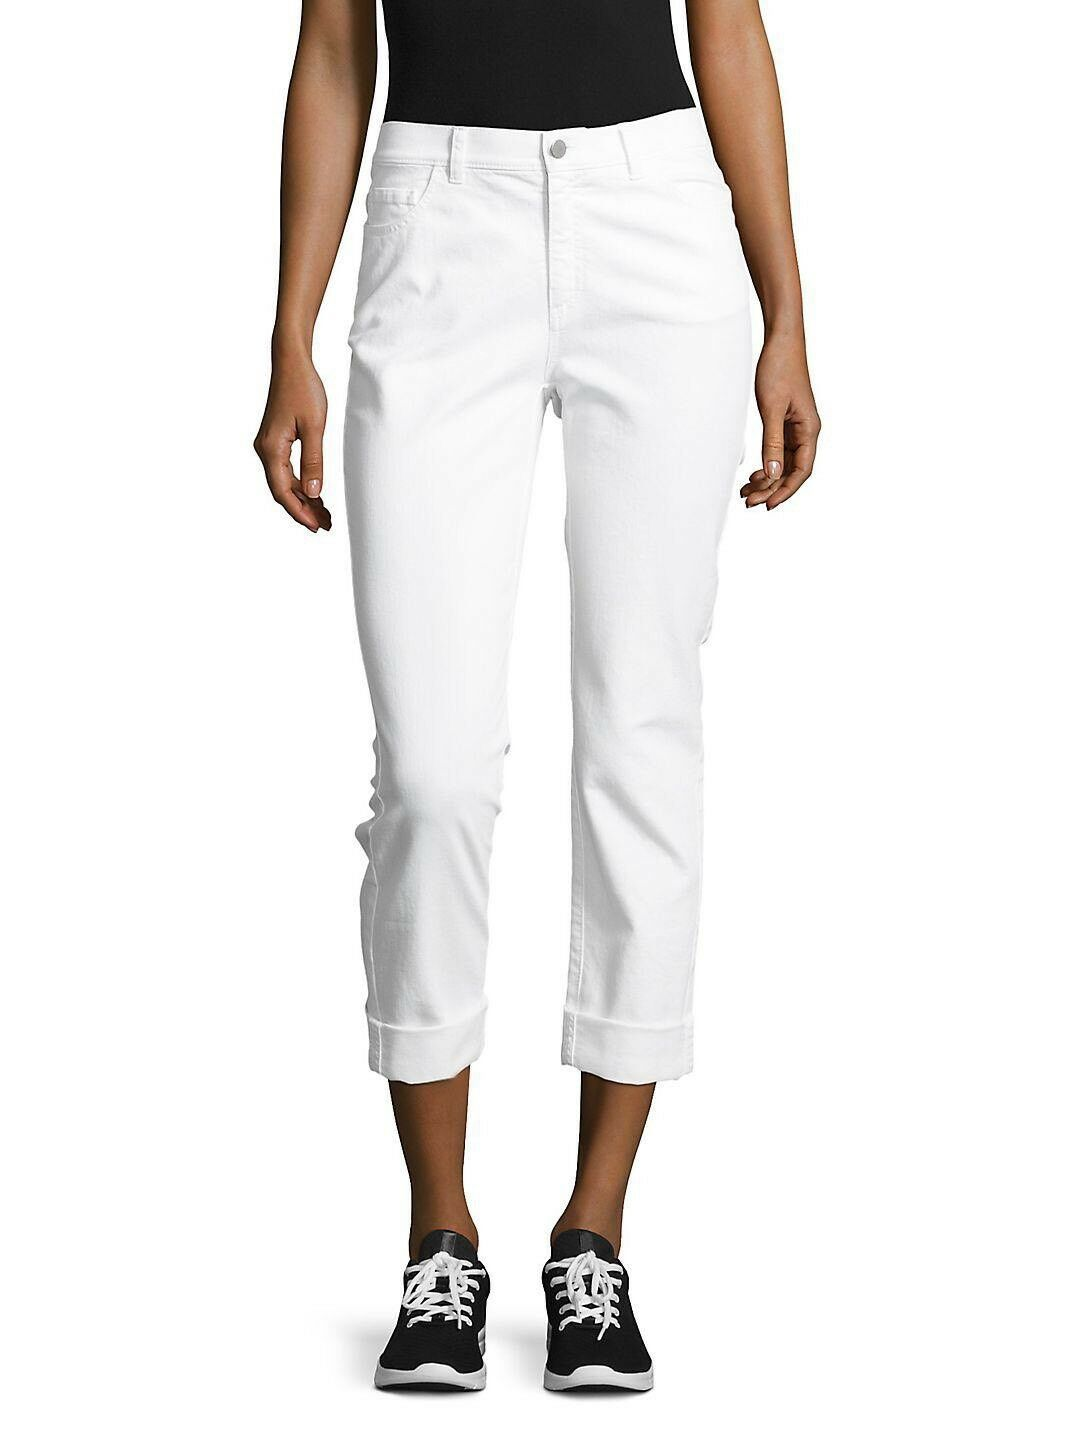 Lafayette 148 White Cotton DALIA Ankle Stretchy Cuffed Croped Jeans Sz.4